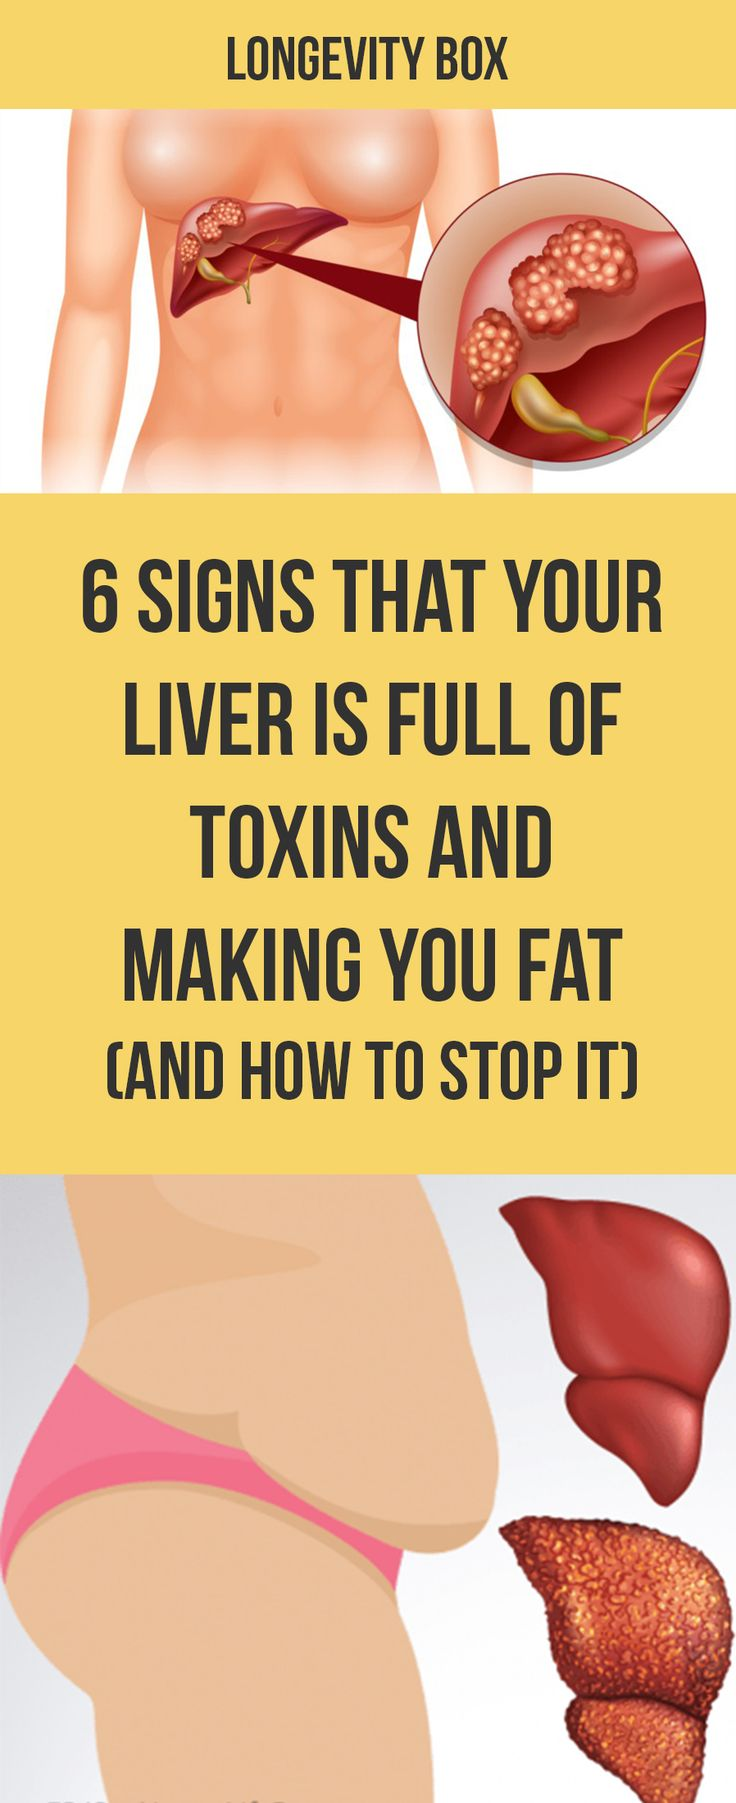 What do you know about liver disease and how important it is to keep our livers in top condition?